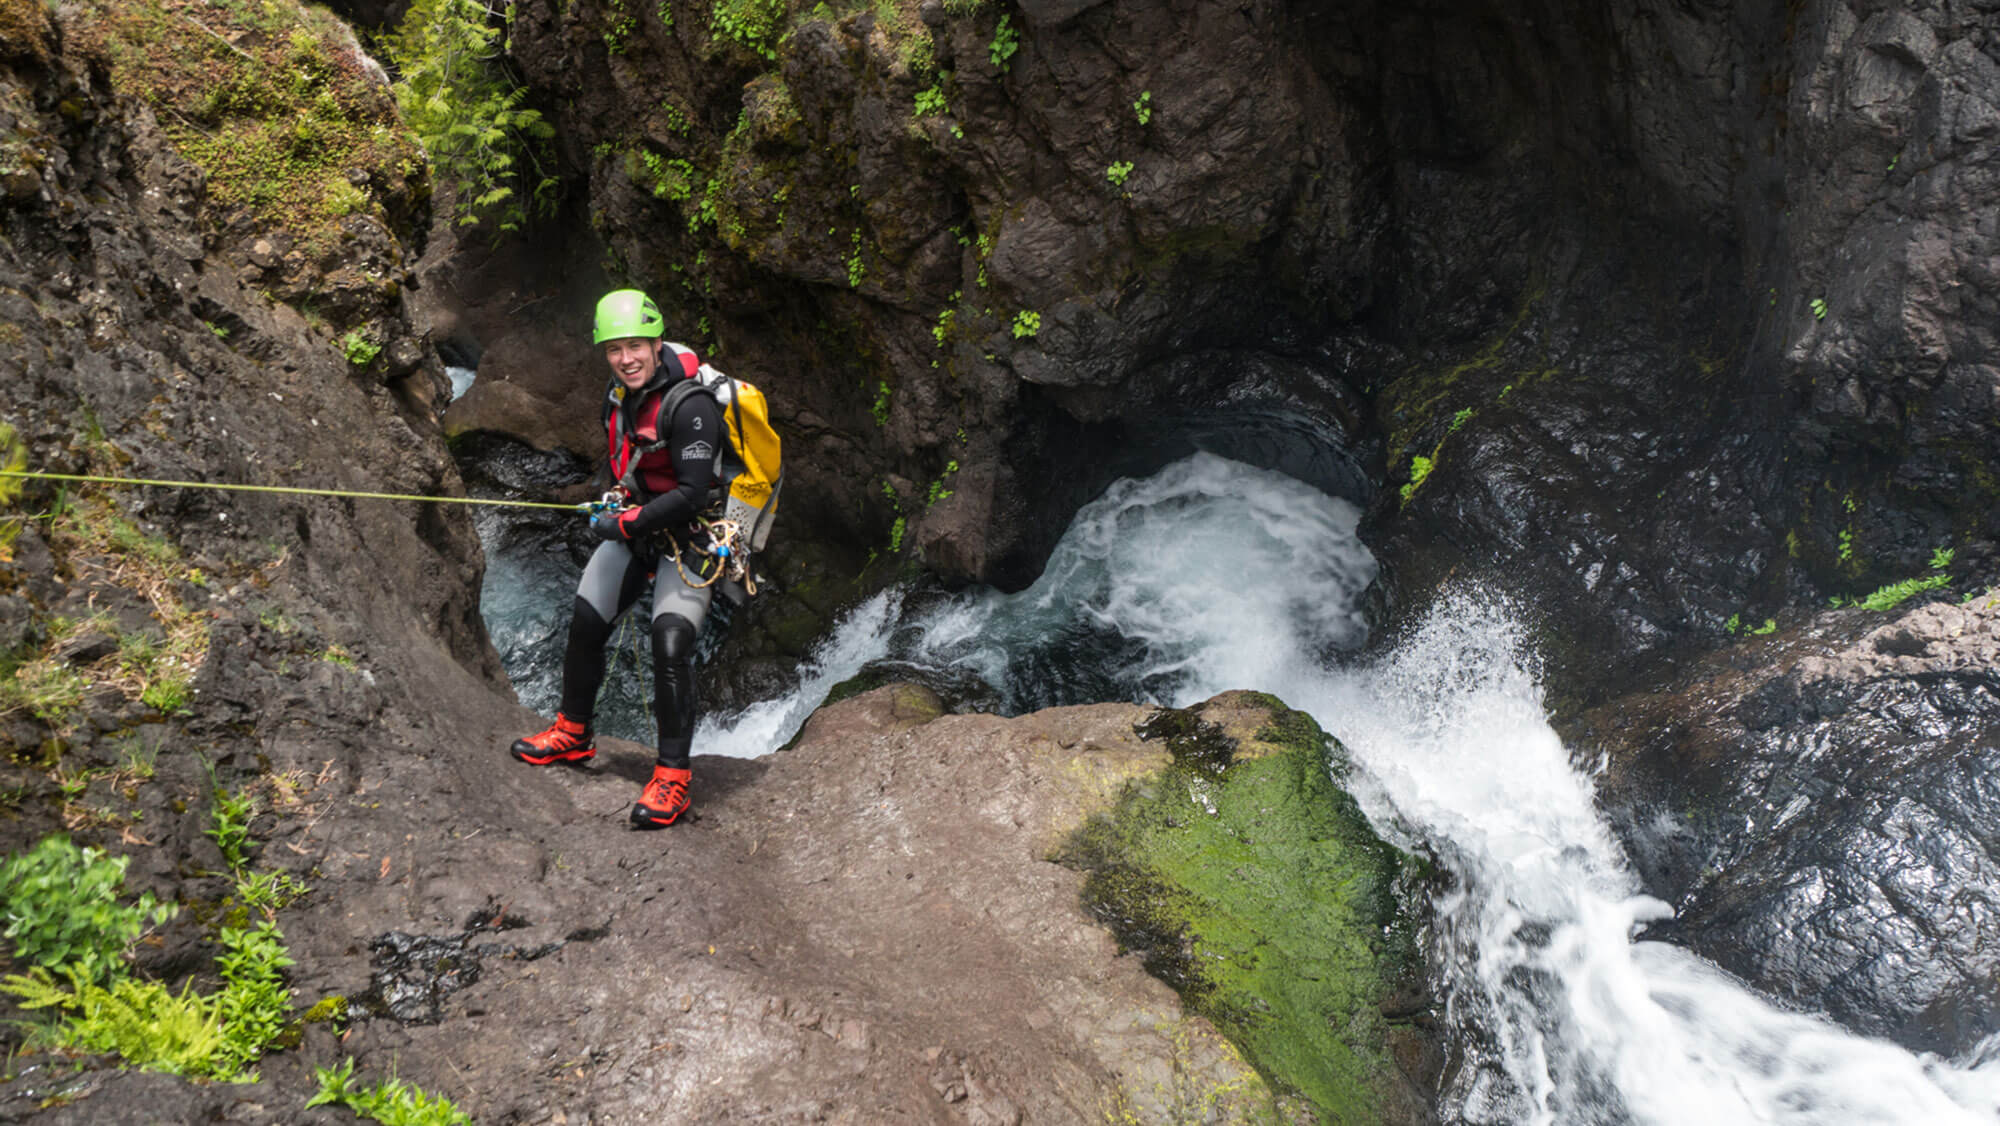 Jake on the first descent of Quicksilver Canyon, I-90 corridor, Washington, 2019. One of those canyons hidden just off the beaten path, we almost expected to find anchors already in this canyon. If anyone had been here before, they left no trace. Photo by Kevin Steffa.